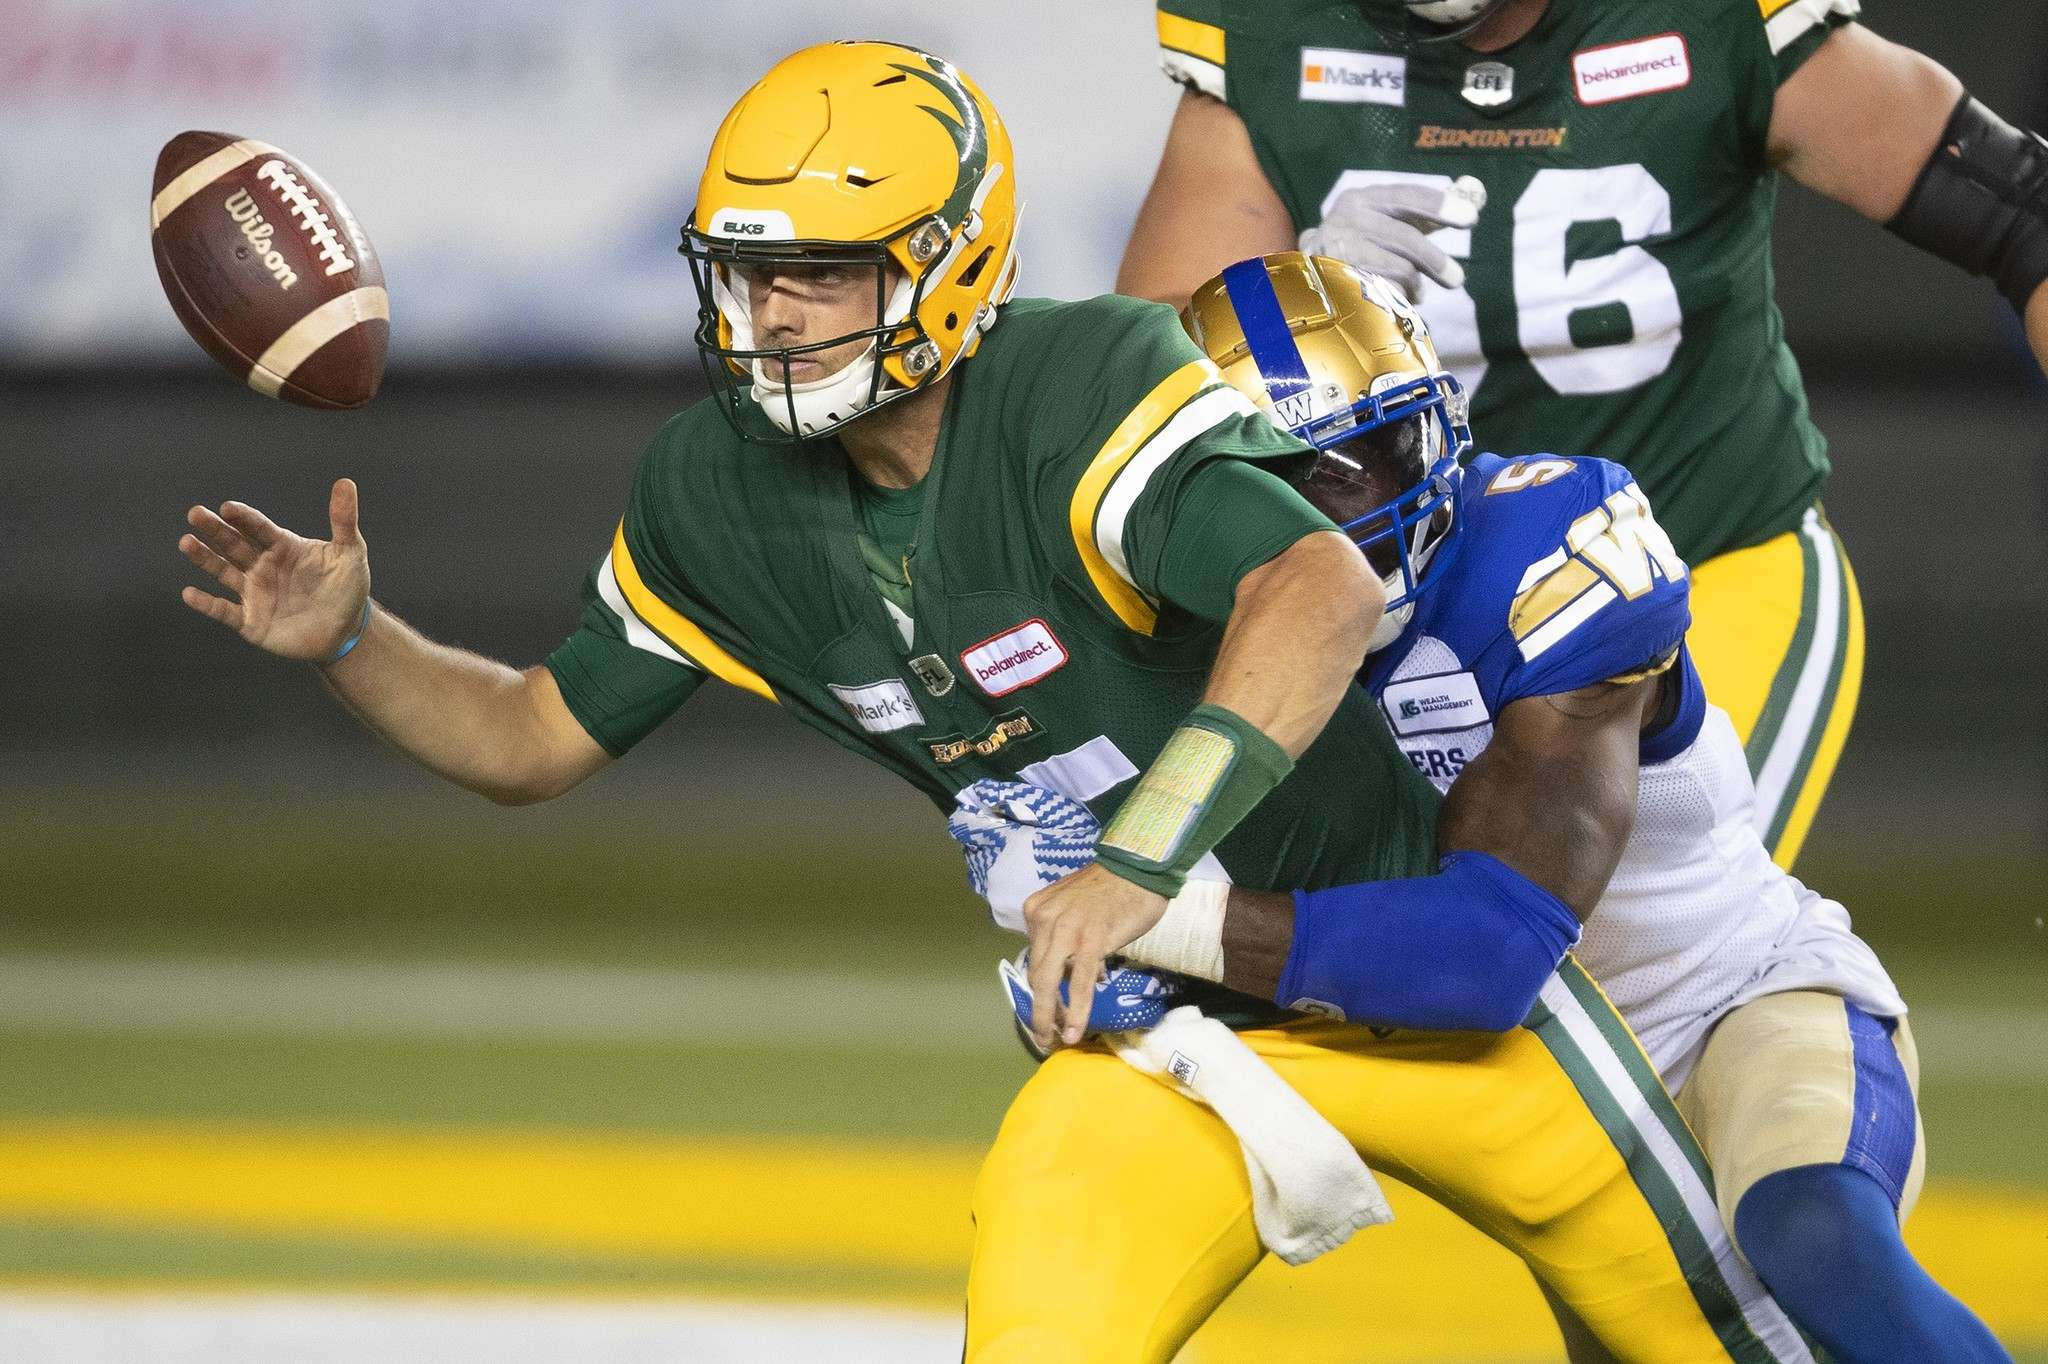 Blue Bombers' Willie Jefferson knocks the ball loose from Elks quarterback Taylor Cornelius on Saturday. The Elks see Cornelius eventually taking over from starting Elks QB Trevor Harris. (Jason Franson / The Canadian Press files)</p>